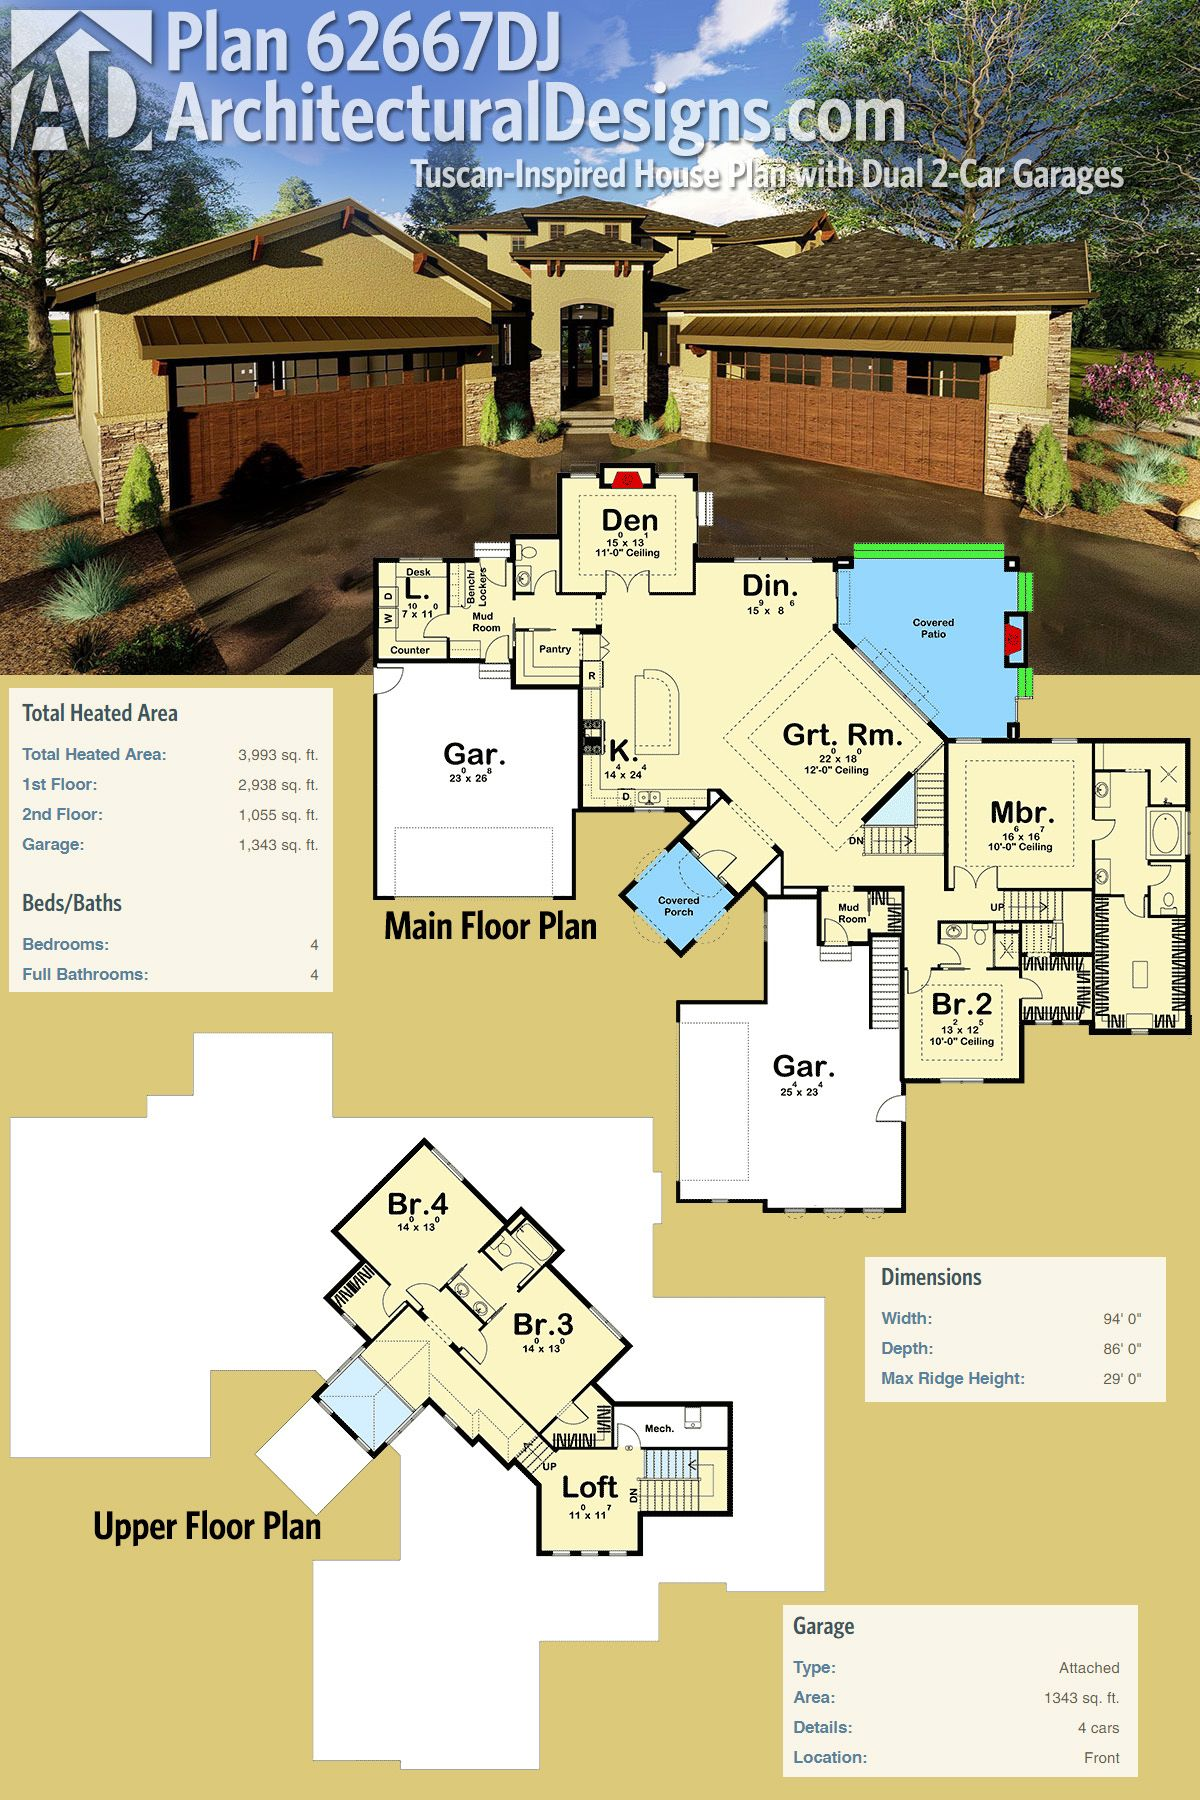 Plan 62667dj Tuscan Inspired House Plan With Dual Garages House Plans Futuristic Home Home Design Floor Plans